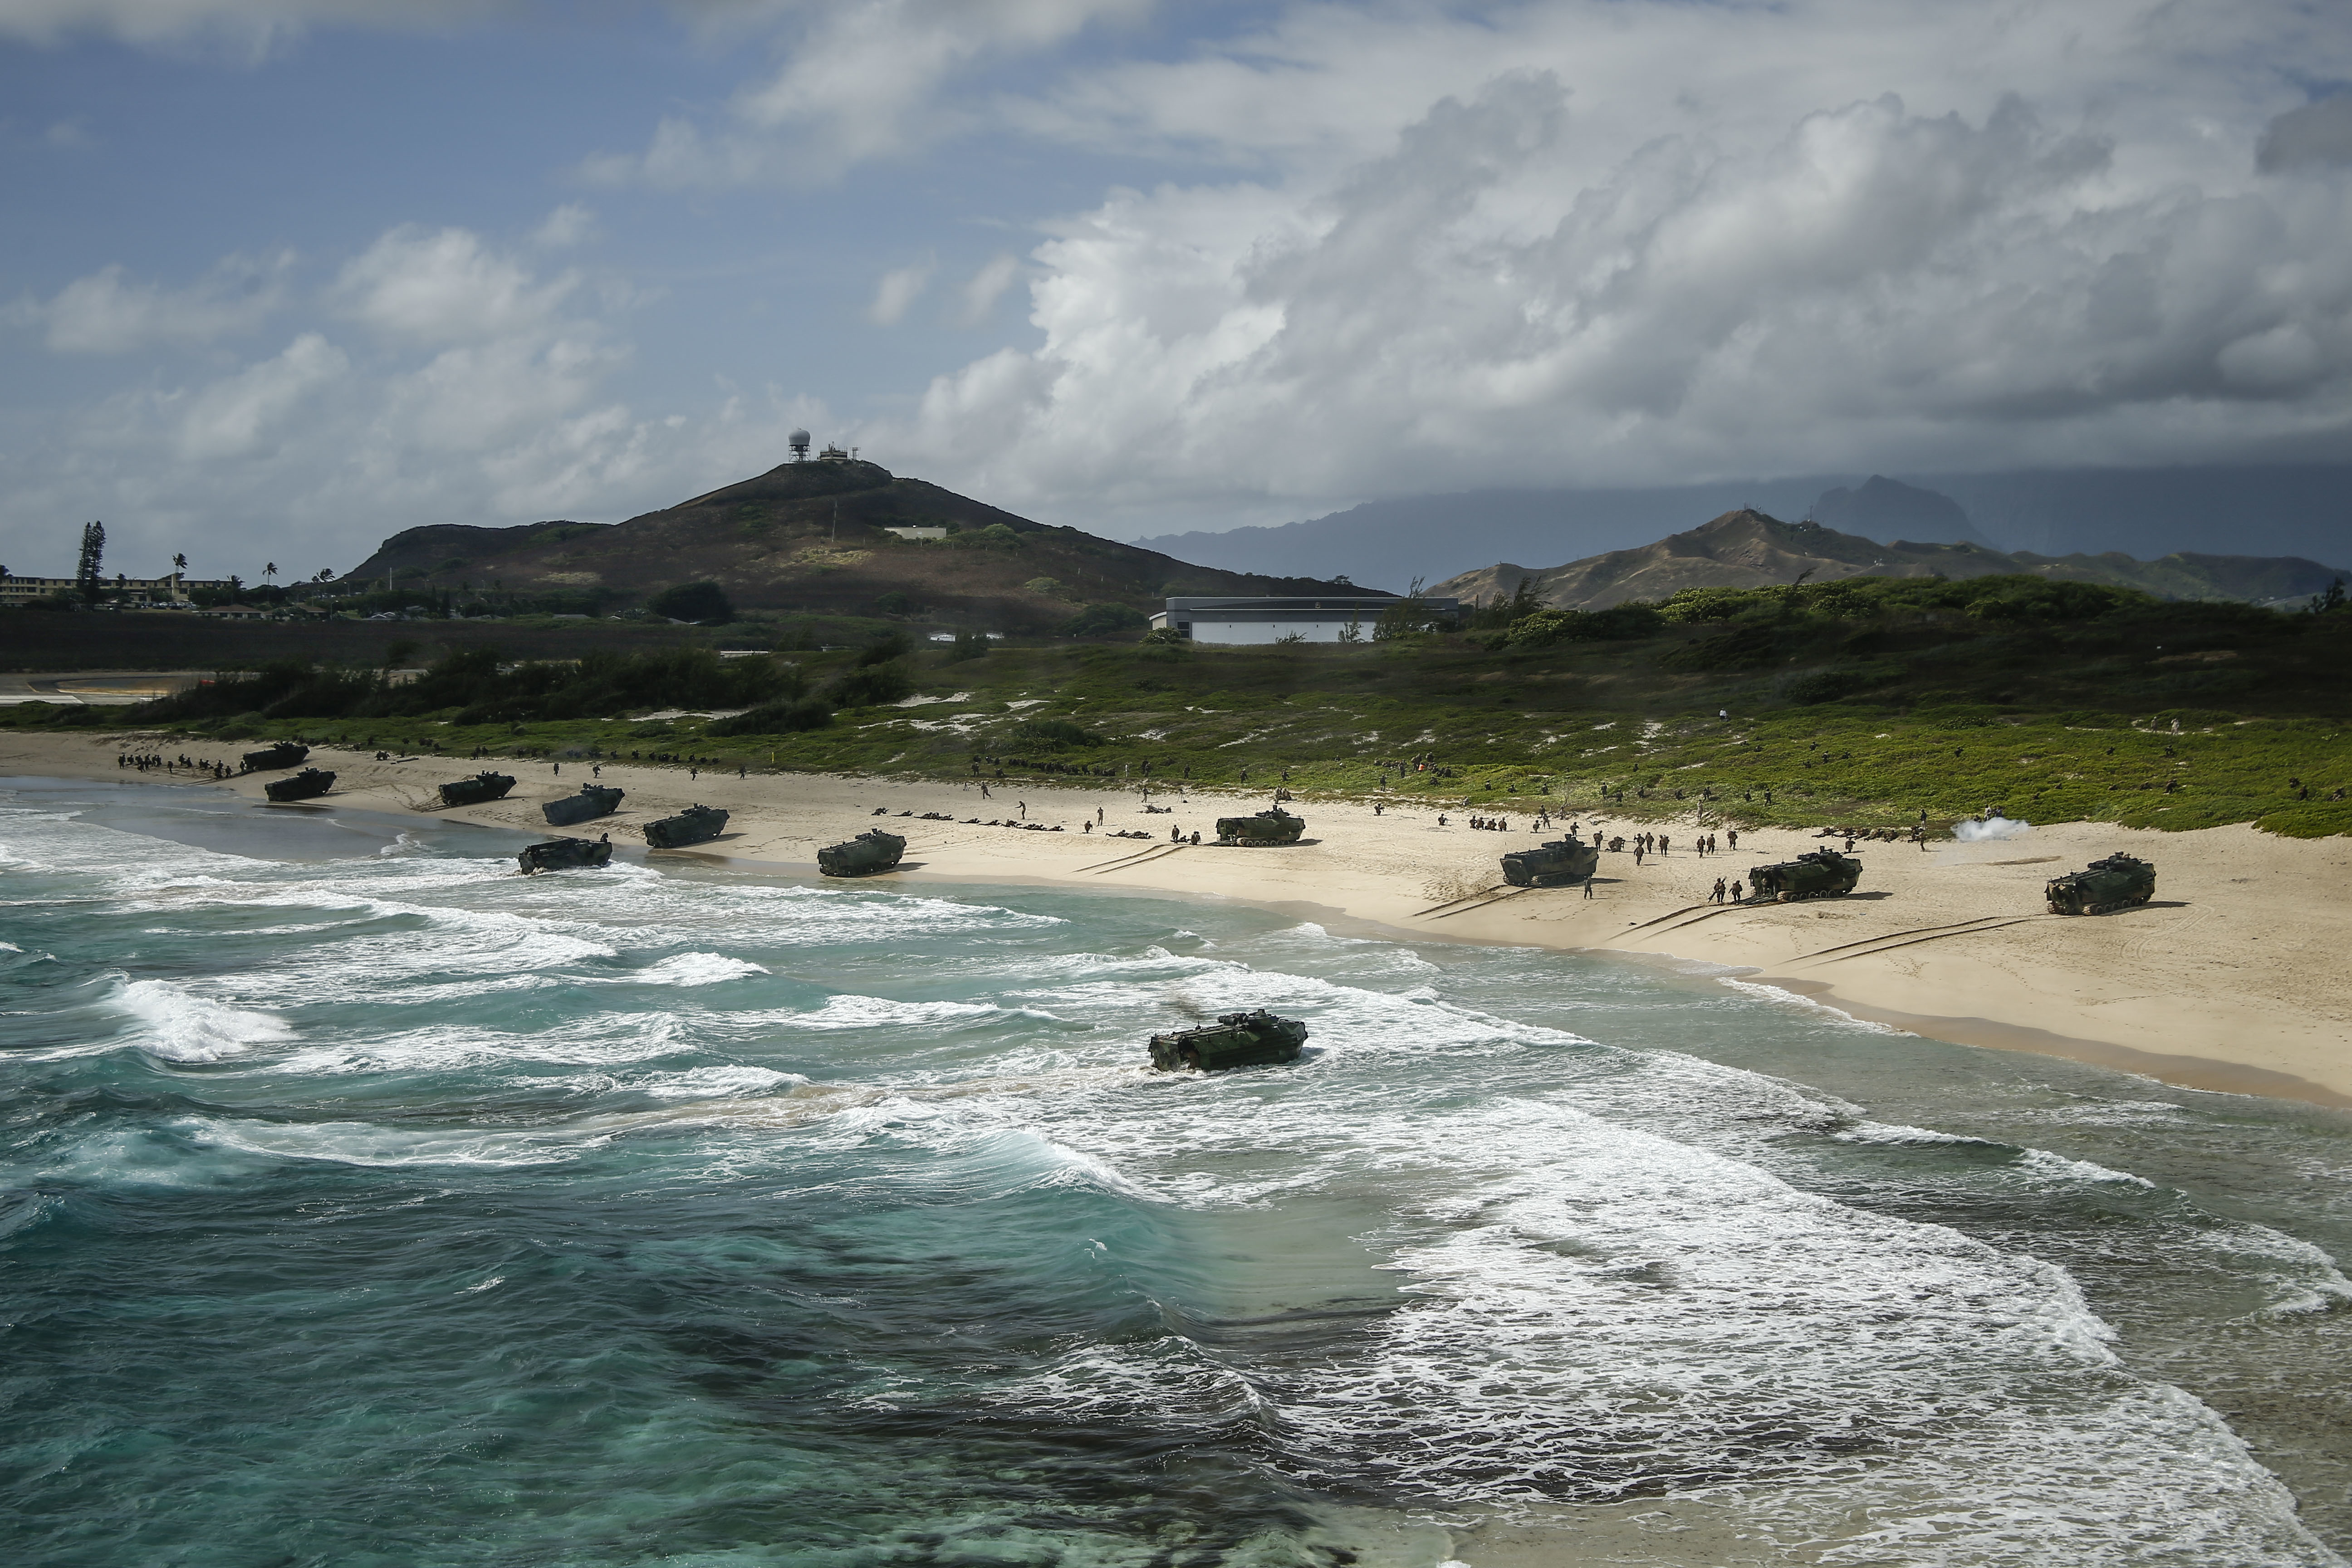 U.S. Marine Corps AAV-P7/A1 assault amphibious vehicles assigned to Combat Assault Company, 3rd Marine Regiment, unload service members during an amphibious landing demonstration as part of Rim of the Pacific (RIMPAC) exercise at Pyramid Rock Beach on Marine Corps Base Hawaii July 29, 2018. Sgt. Aaron S. Patterson/US Marine Corps.